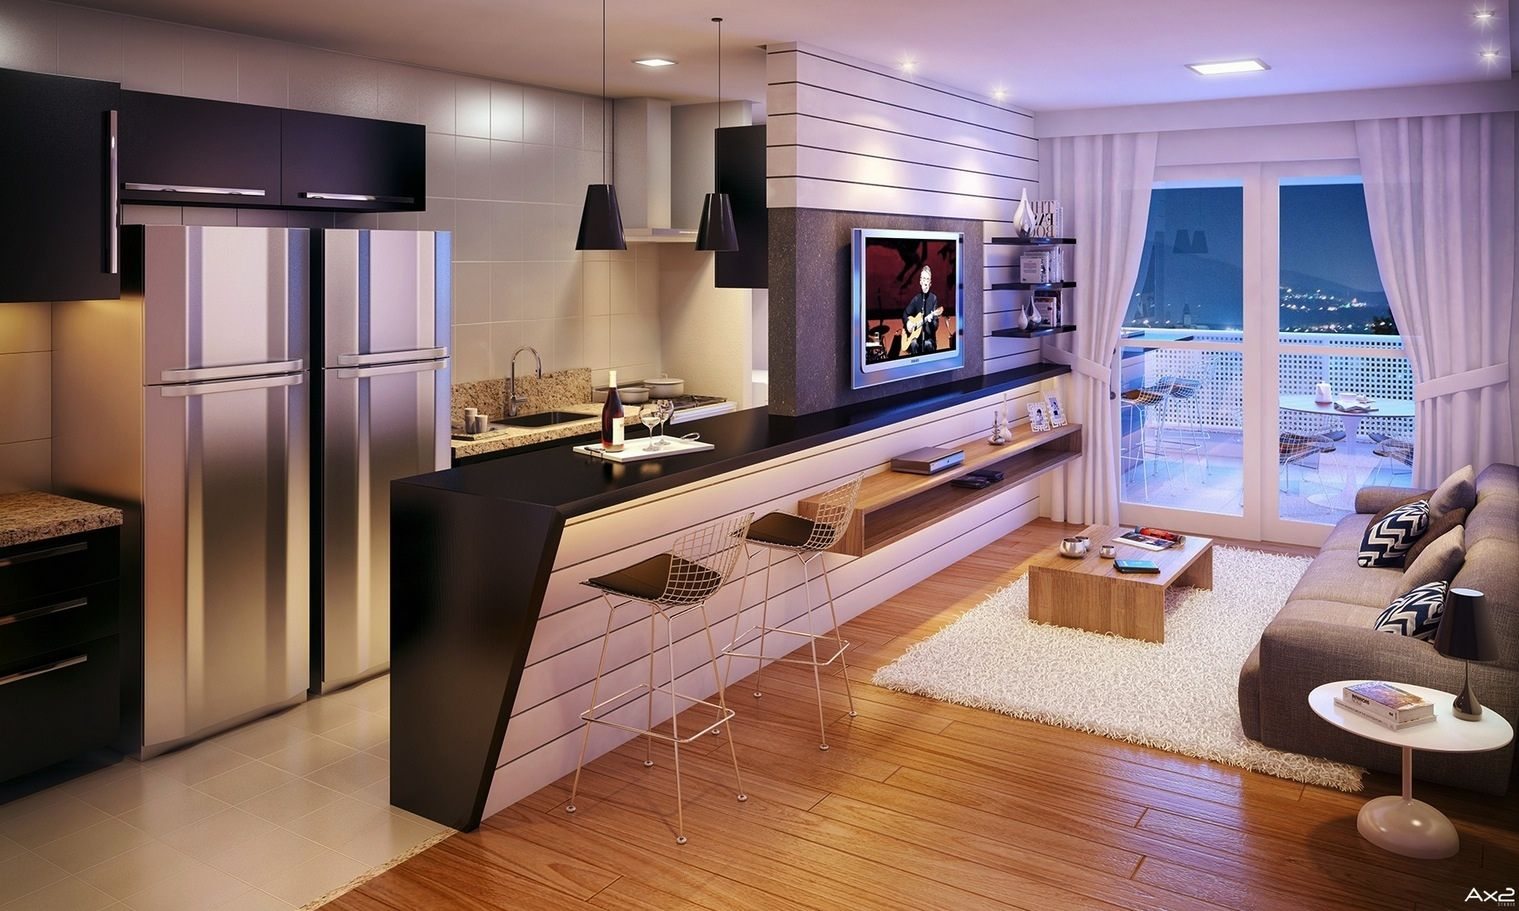 23 Open Concept Apartment Interiors For Inspiration. Living Room ModernKitchen  Living RoomsLiving Room WallsApartment Interior DesignInterior ...